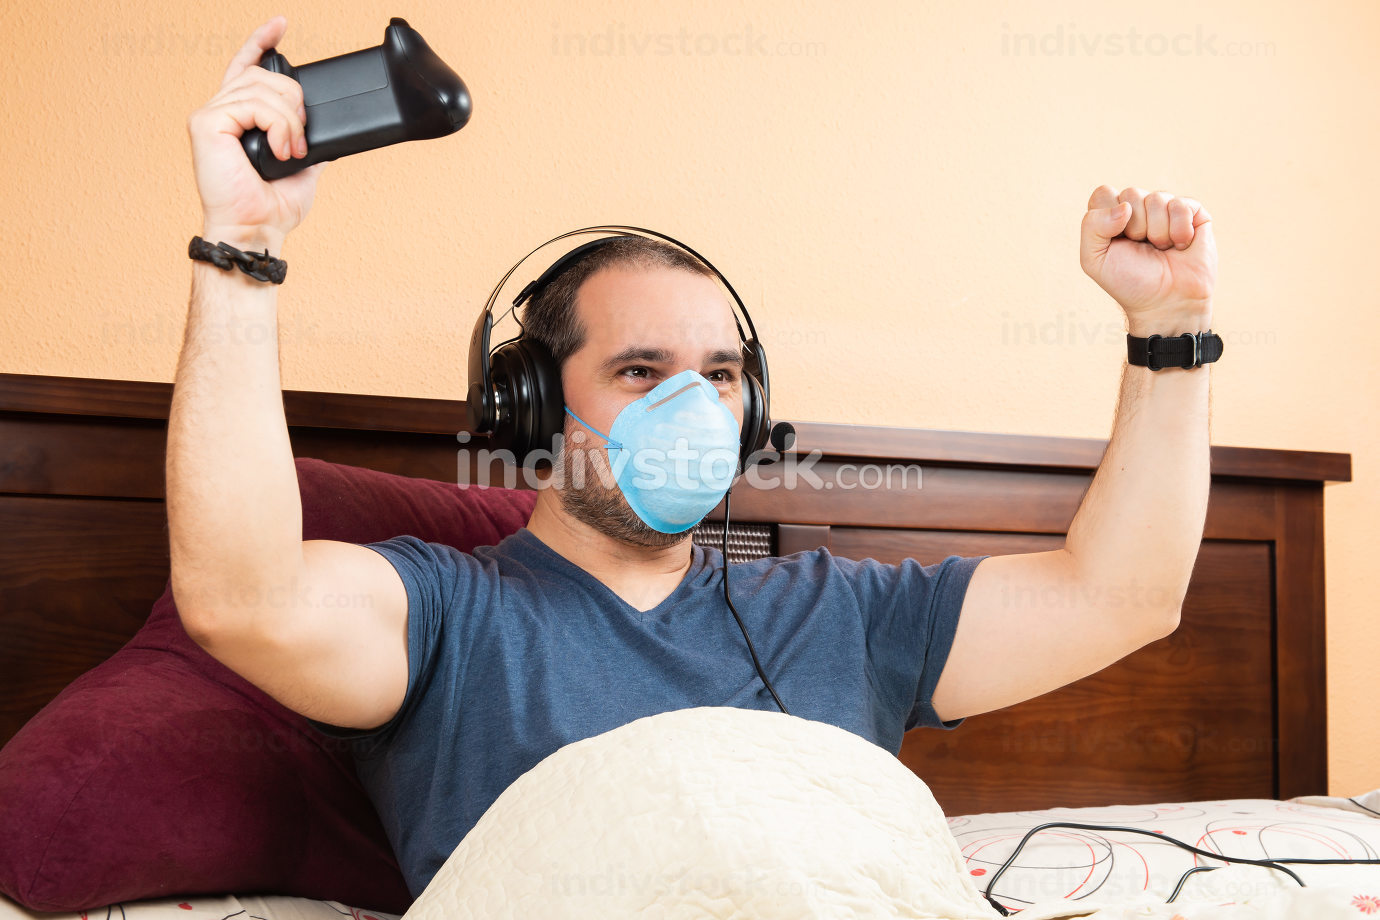 sick man with headphone and medical mask, playing videogames in